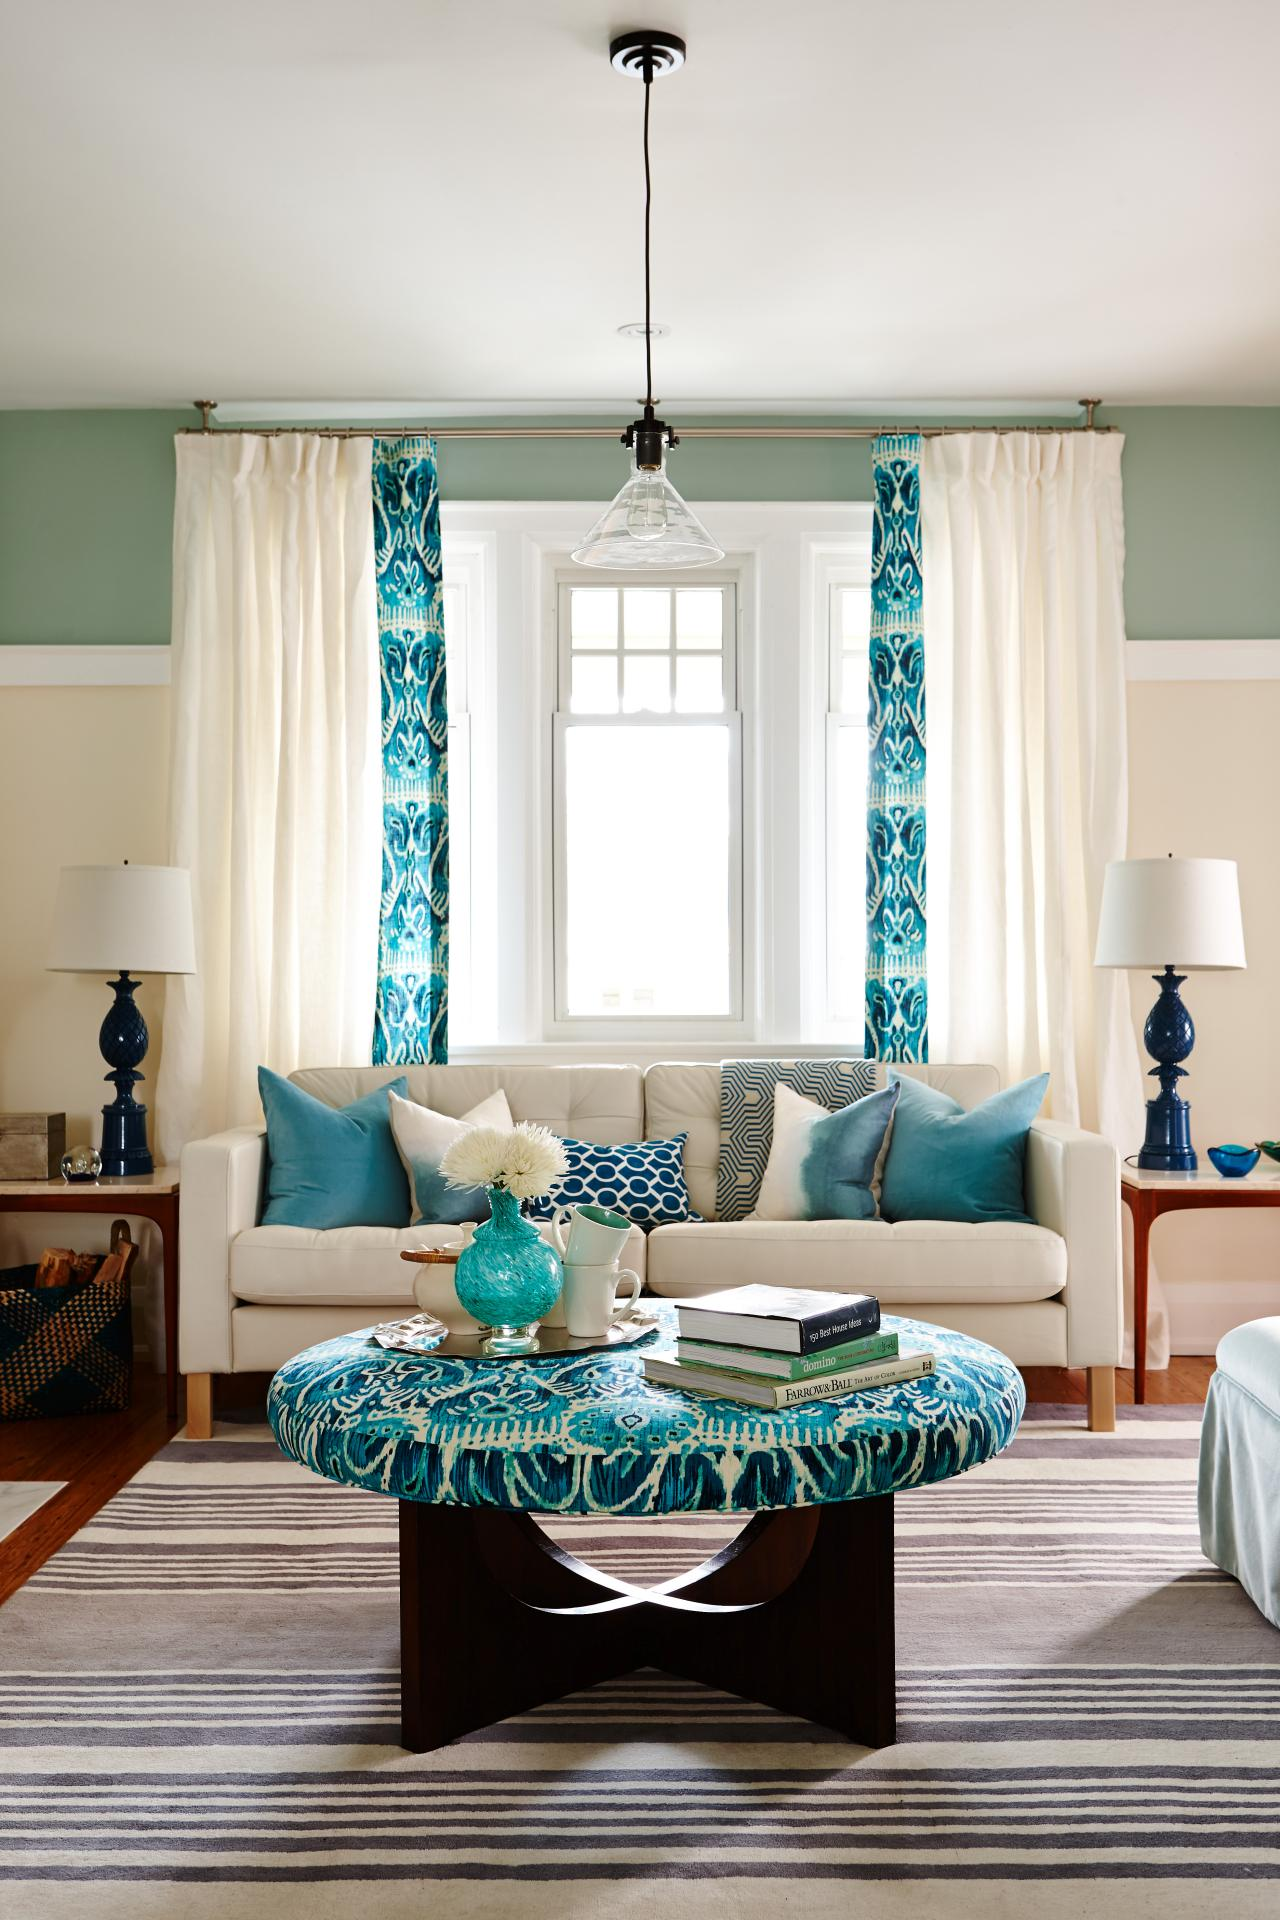 living room with turquoise accents  living room with turquoise accents 10 ideas for how to decorate your living room with turquoise accents living room turquoise 6